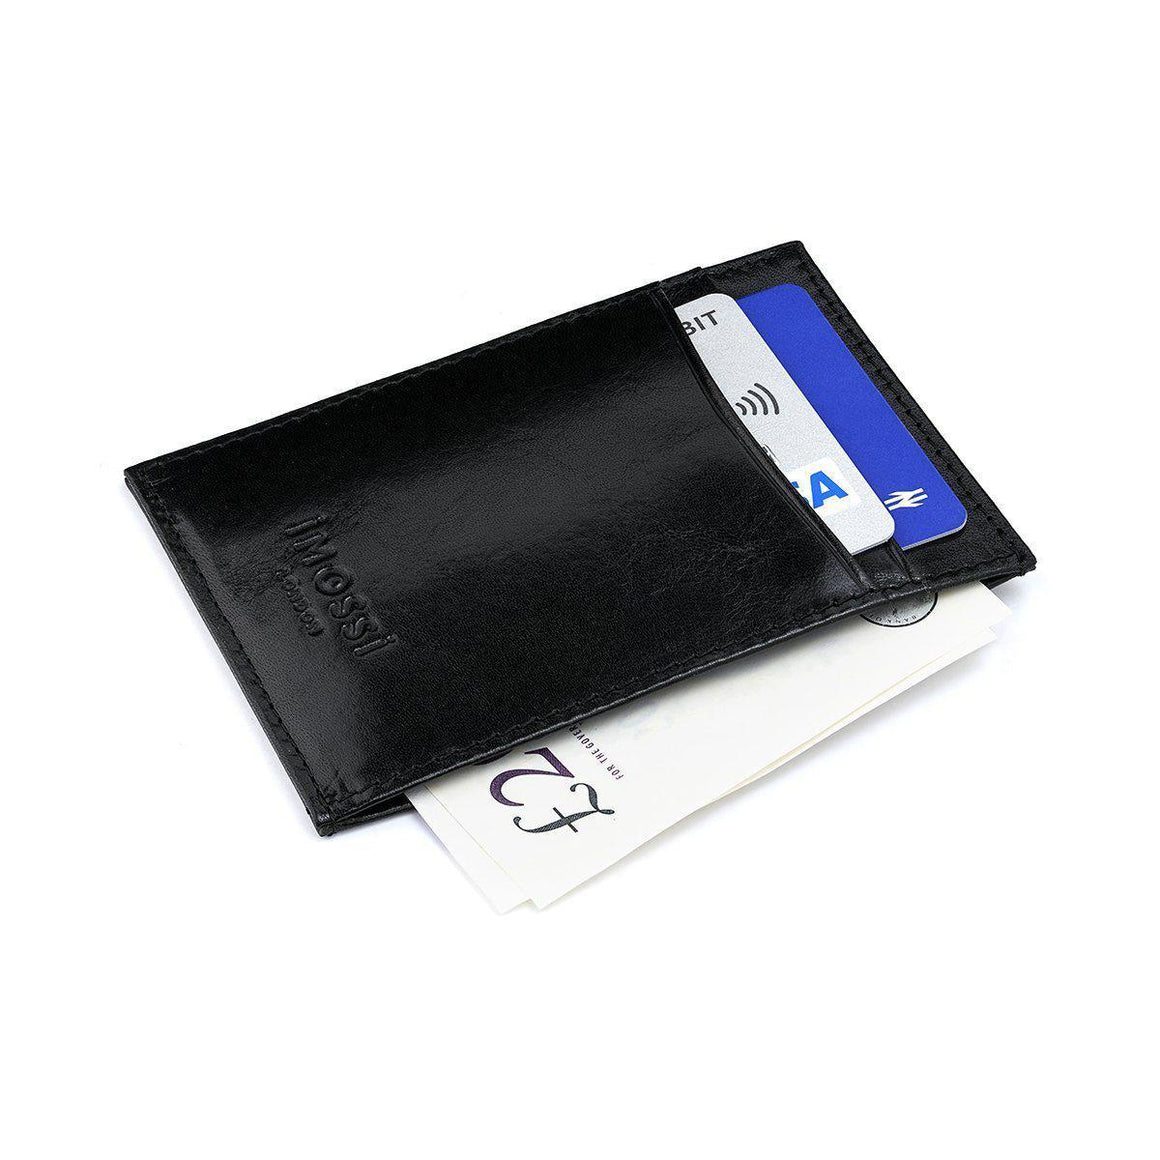 Wallet - IMOSSi NW3 Leather Wallet - Black